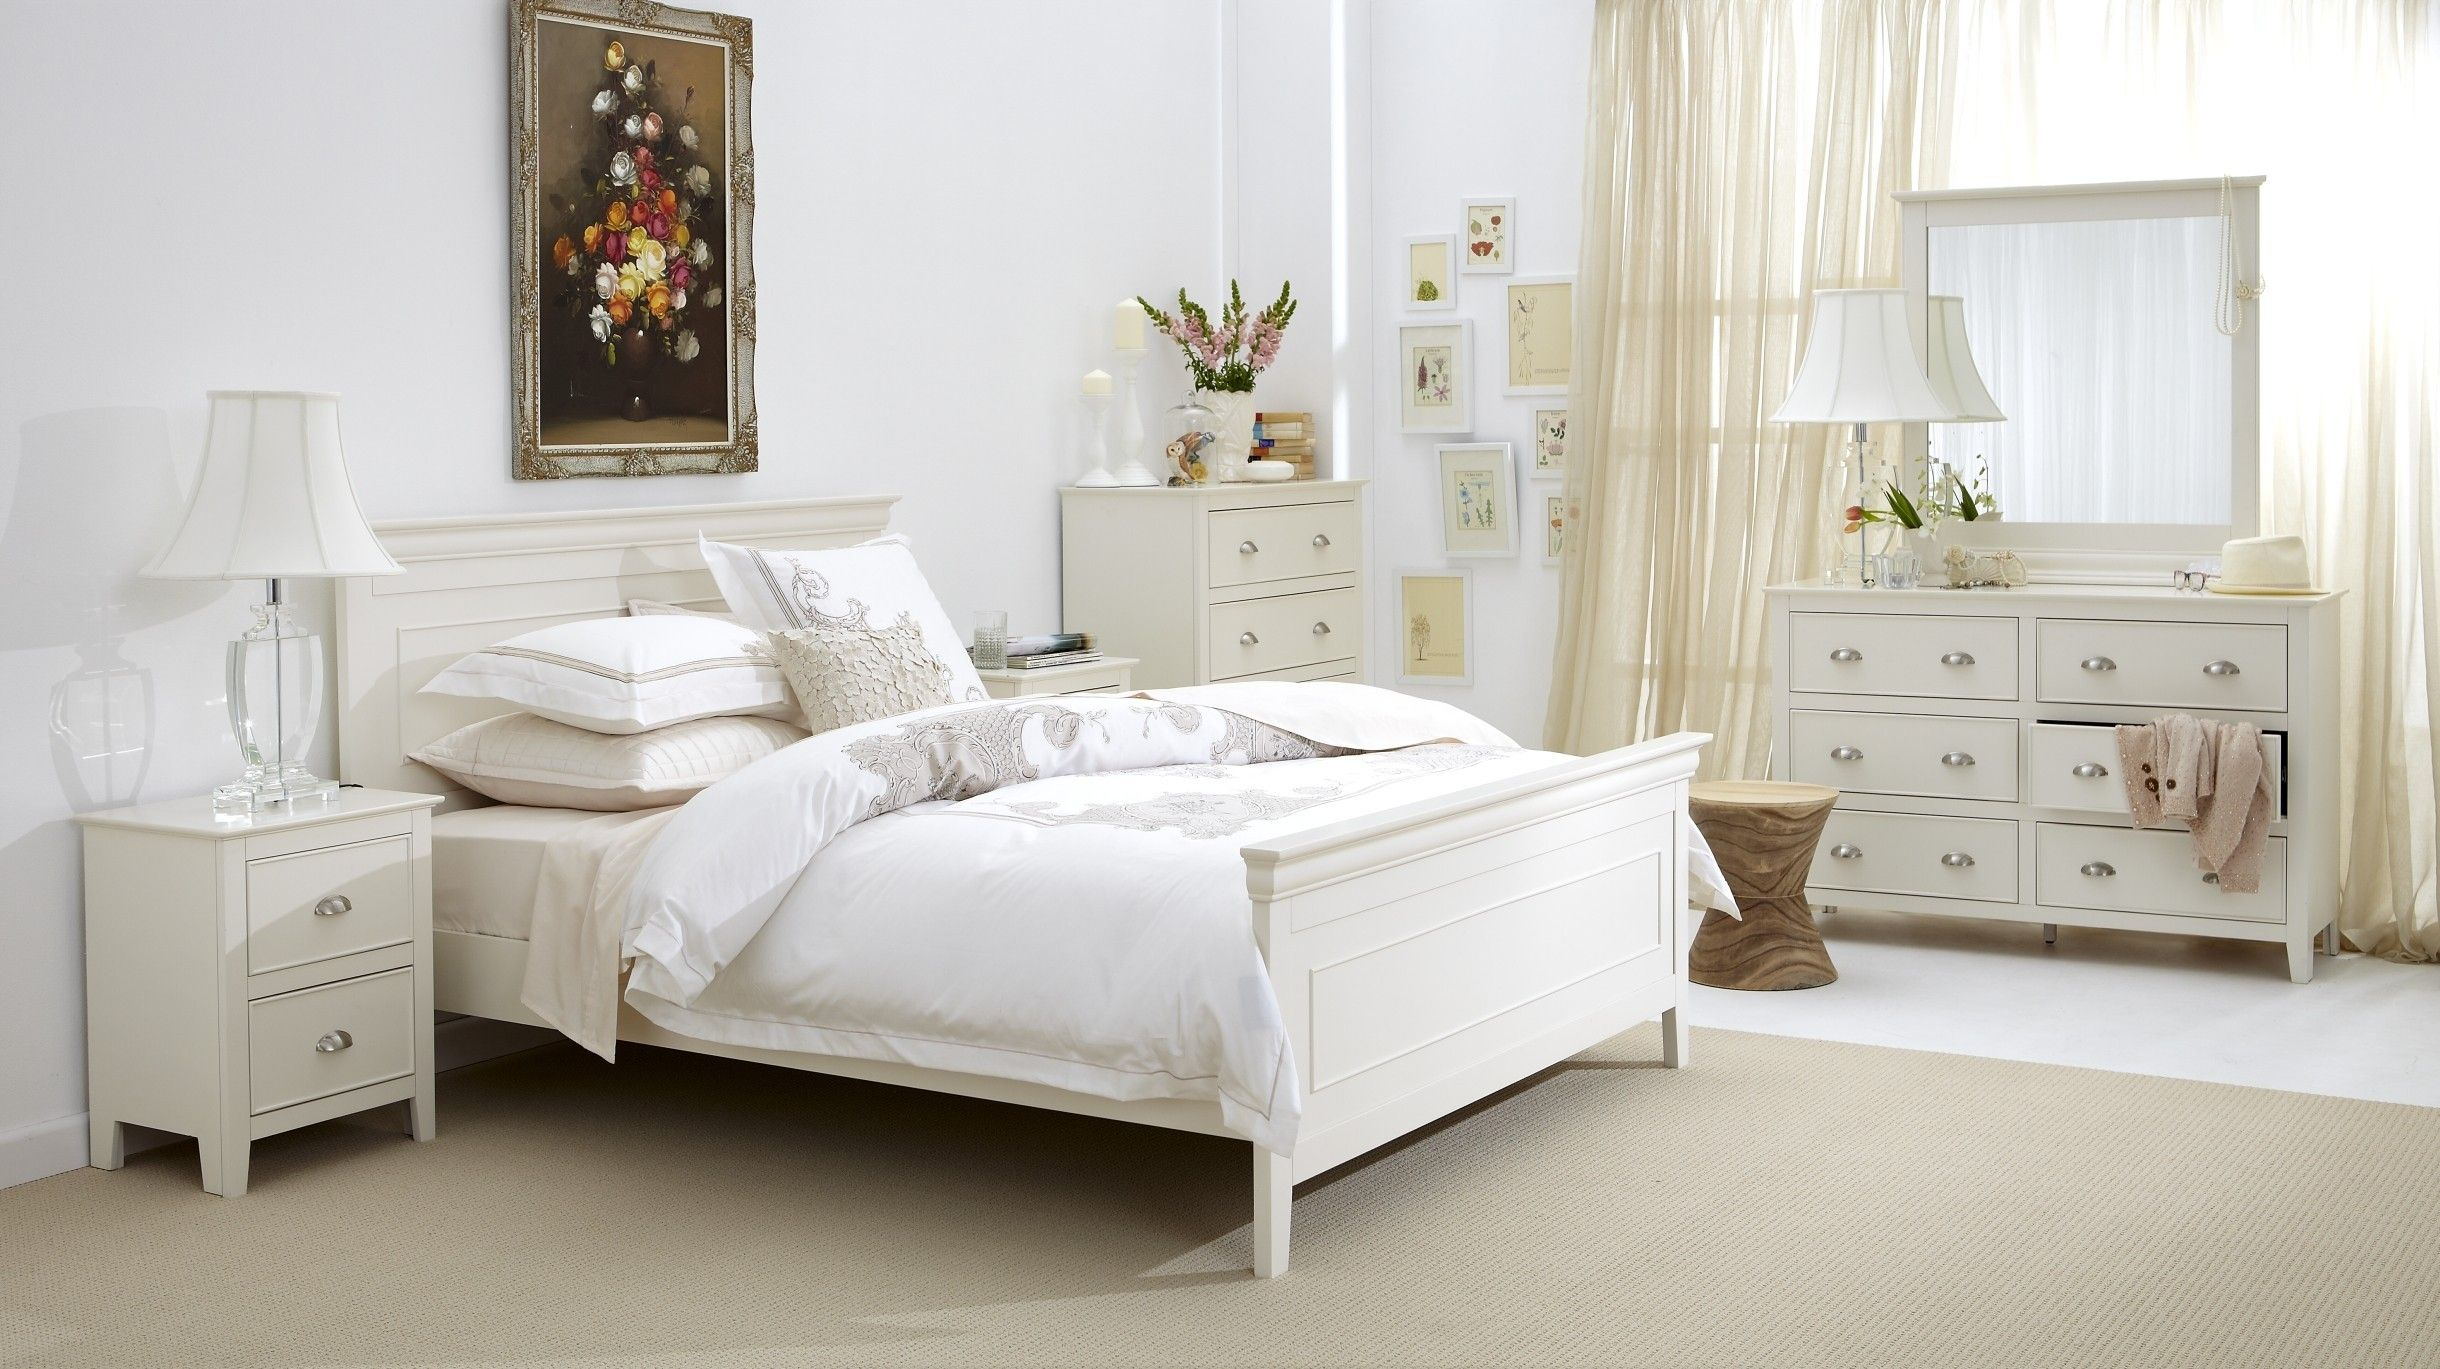 Distressed White Bedroom Sets White Distressed Bedroom Furniture ...